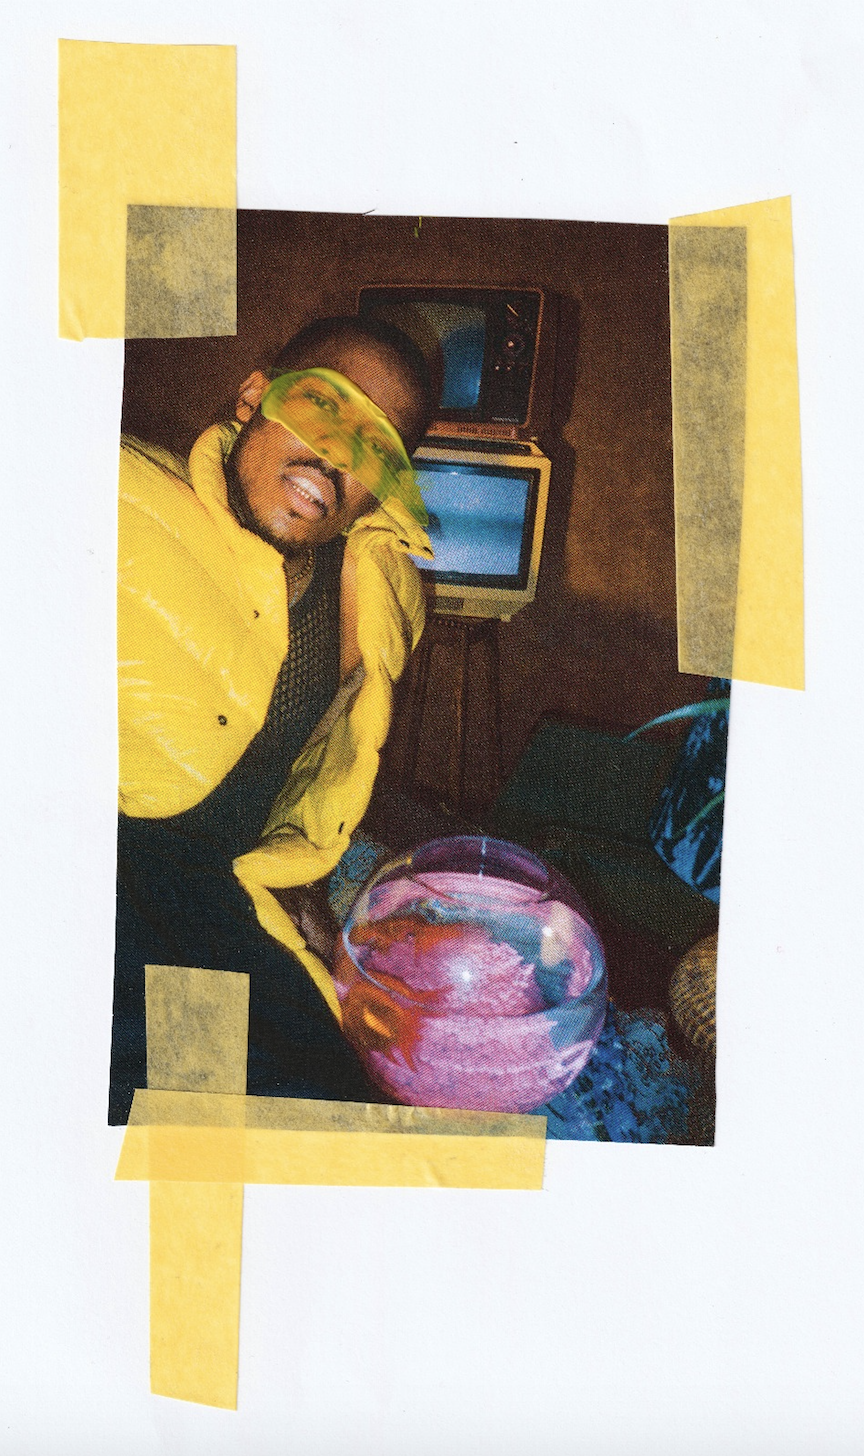 LE3's world - Shot by Sabb Adams, Collaged by Shaquille-Aaron Keith (2018)